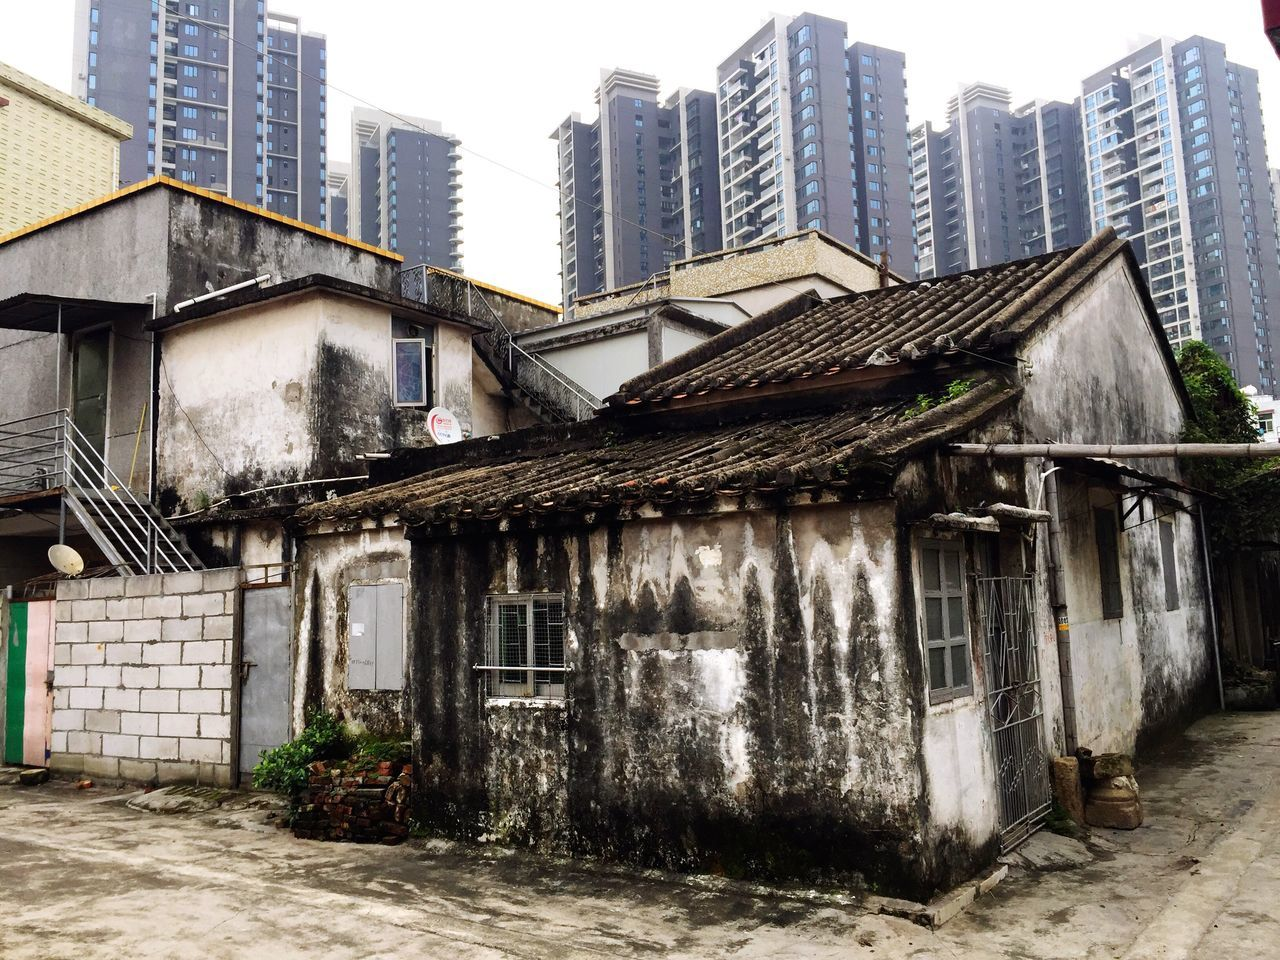 Found On The Roll Zhuhai China Opposites Old Old Buildings Development Urban Urban Landscape City Cityscapes Architecture Contrast Poor  Poor People